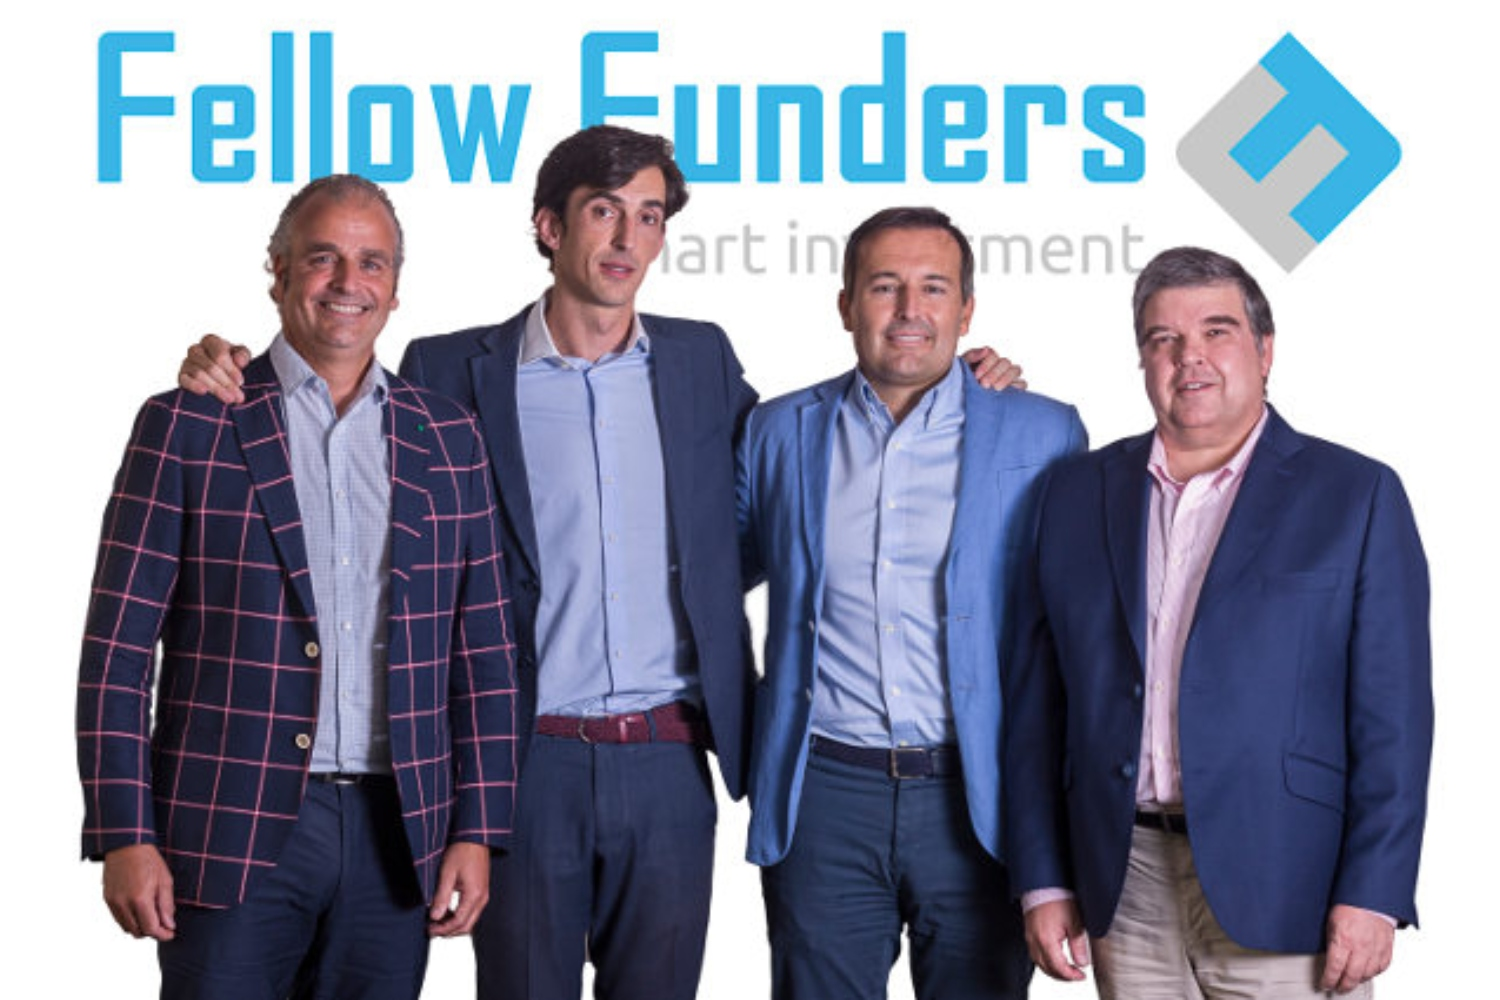 Fellow Funders equity